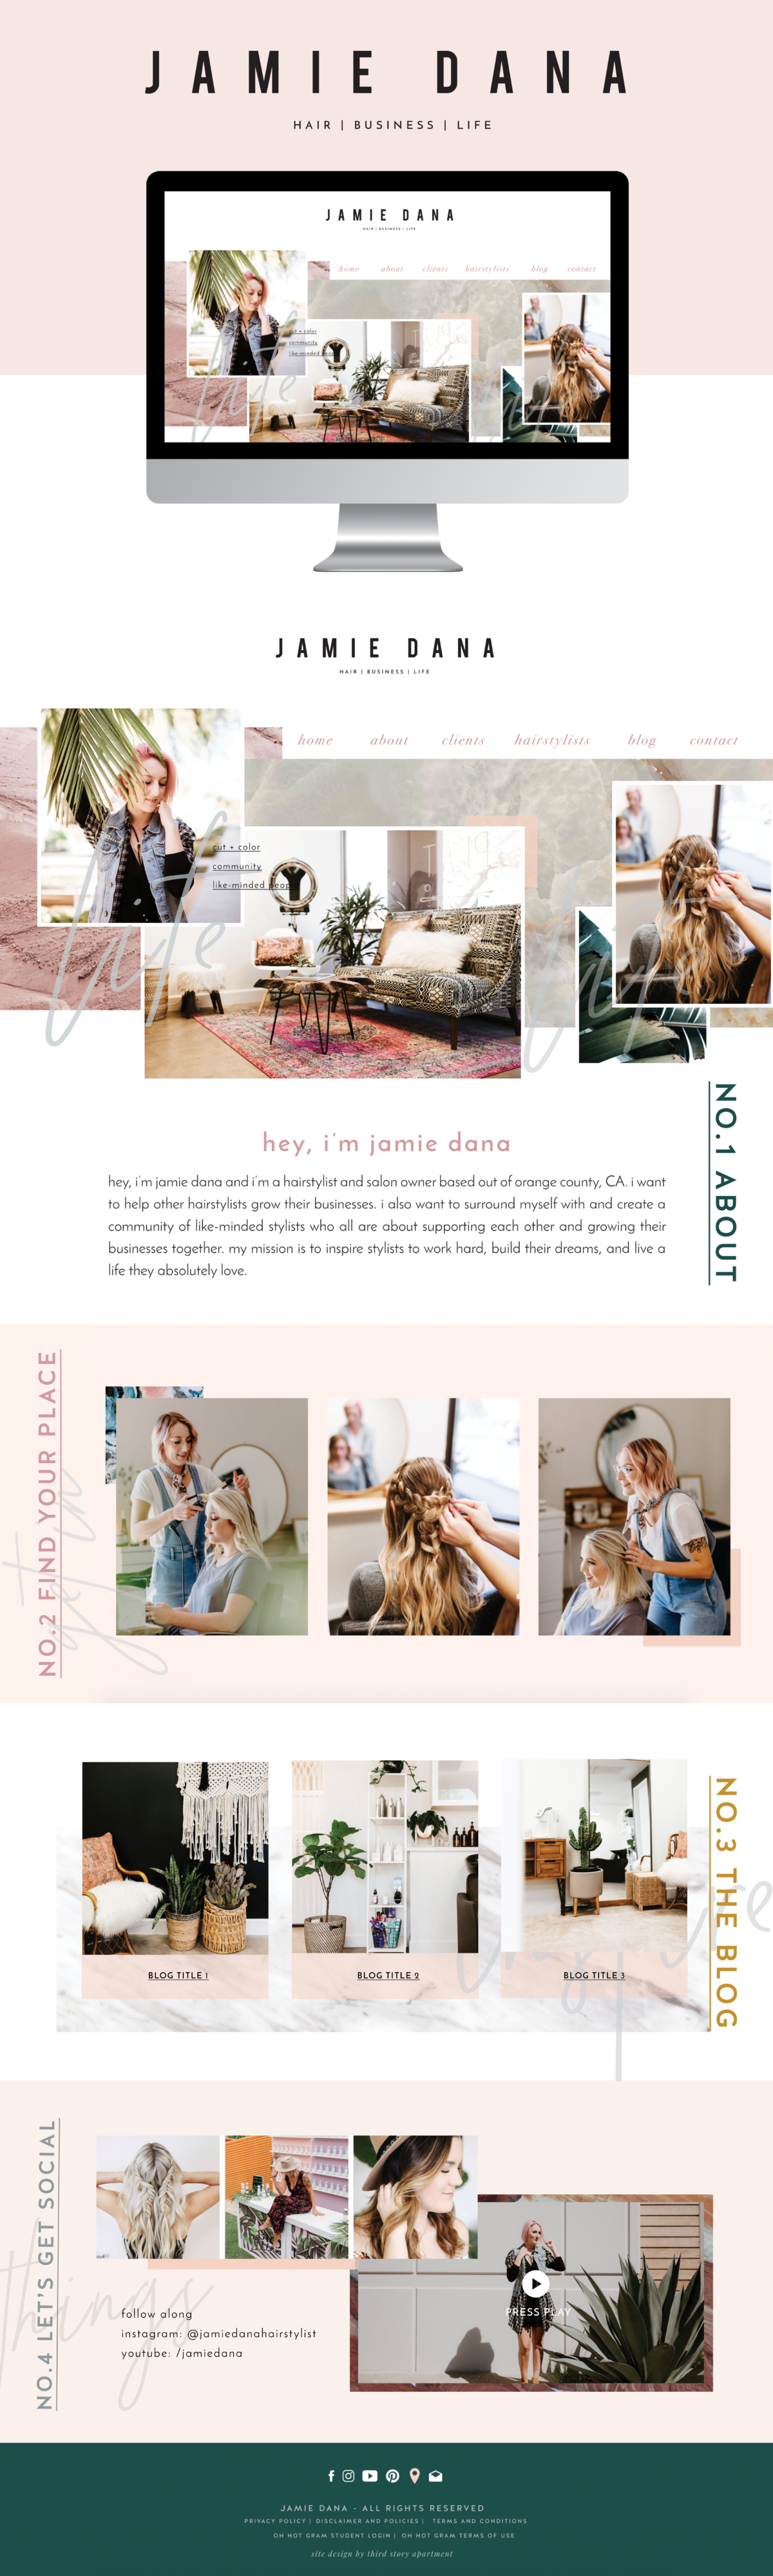 ThirdStory-Template-Desktop-And-Layout-jamiedana